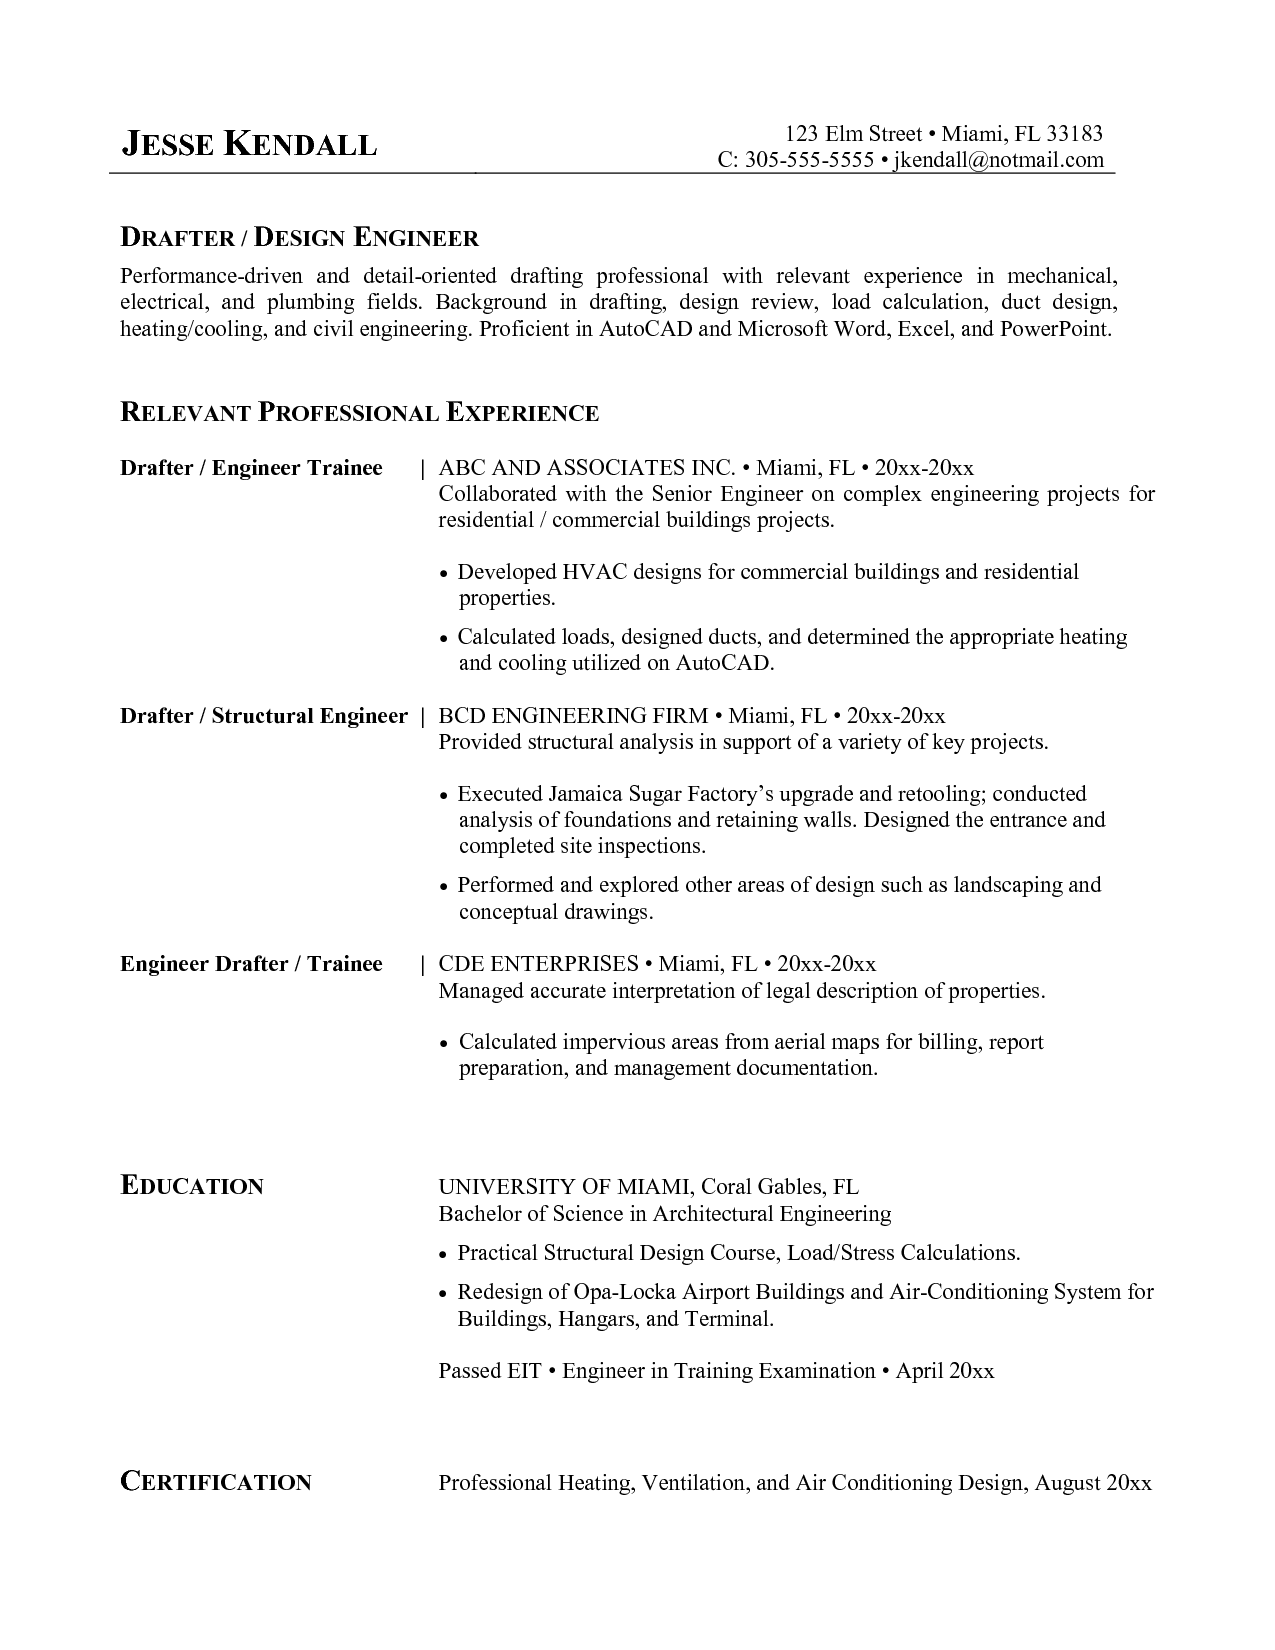 resume draft sample tk category curriculum vitae